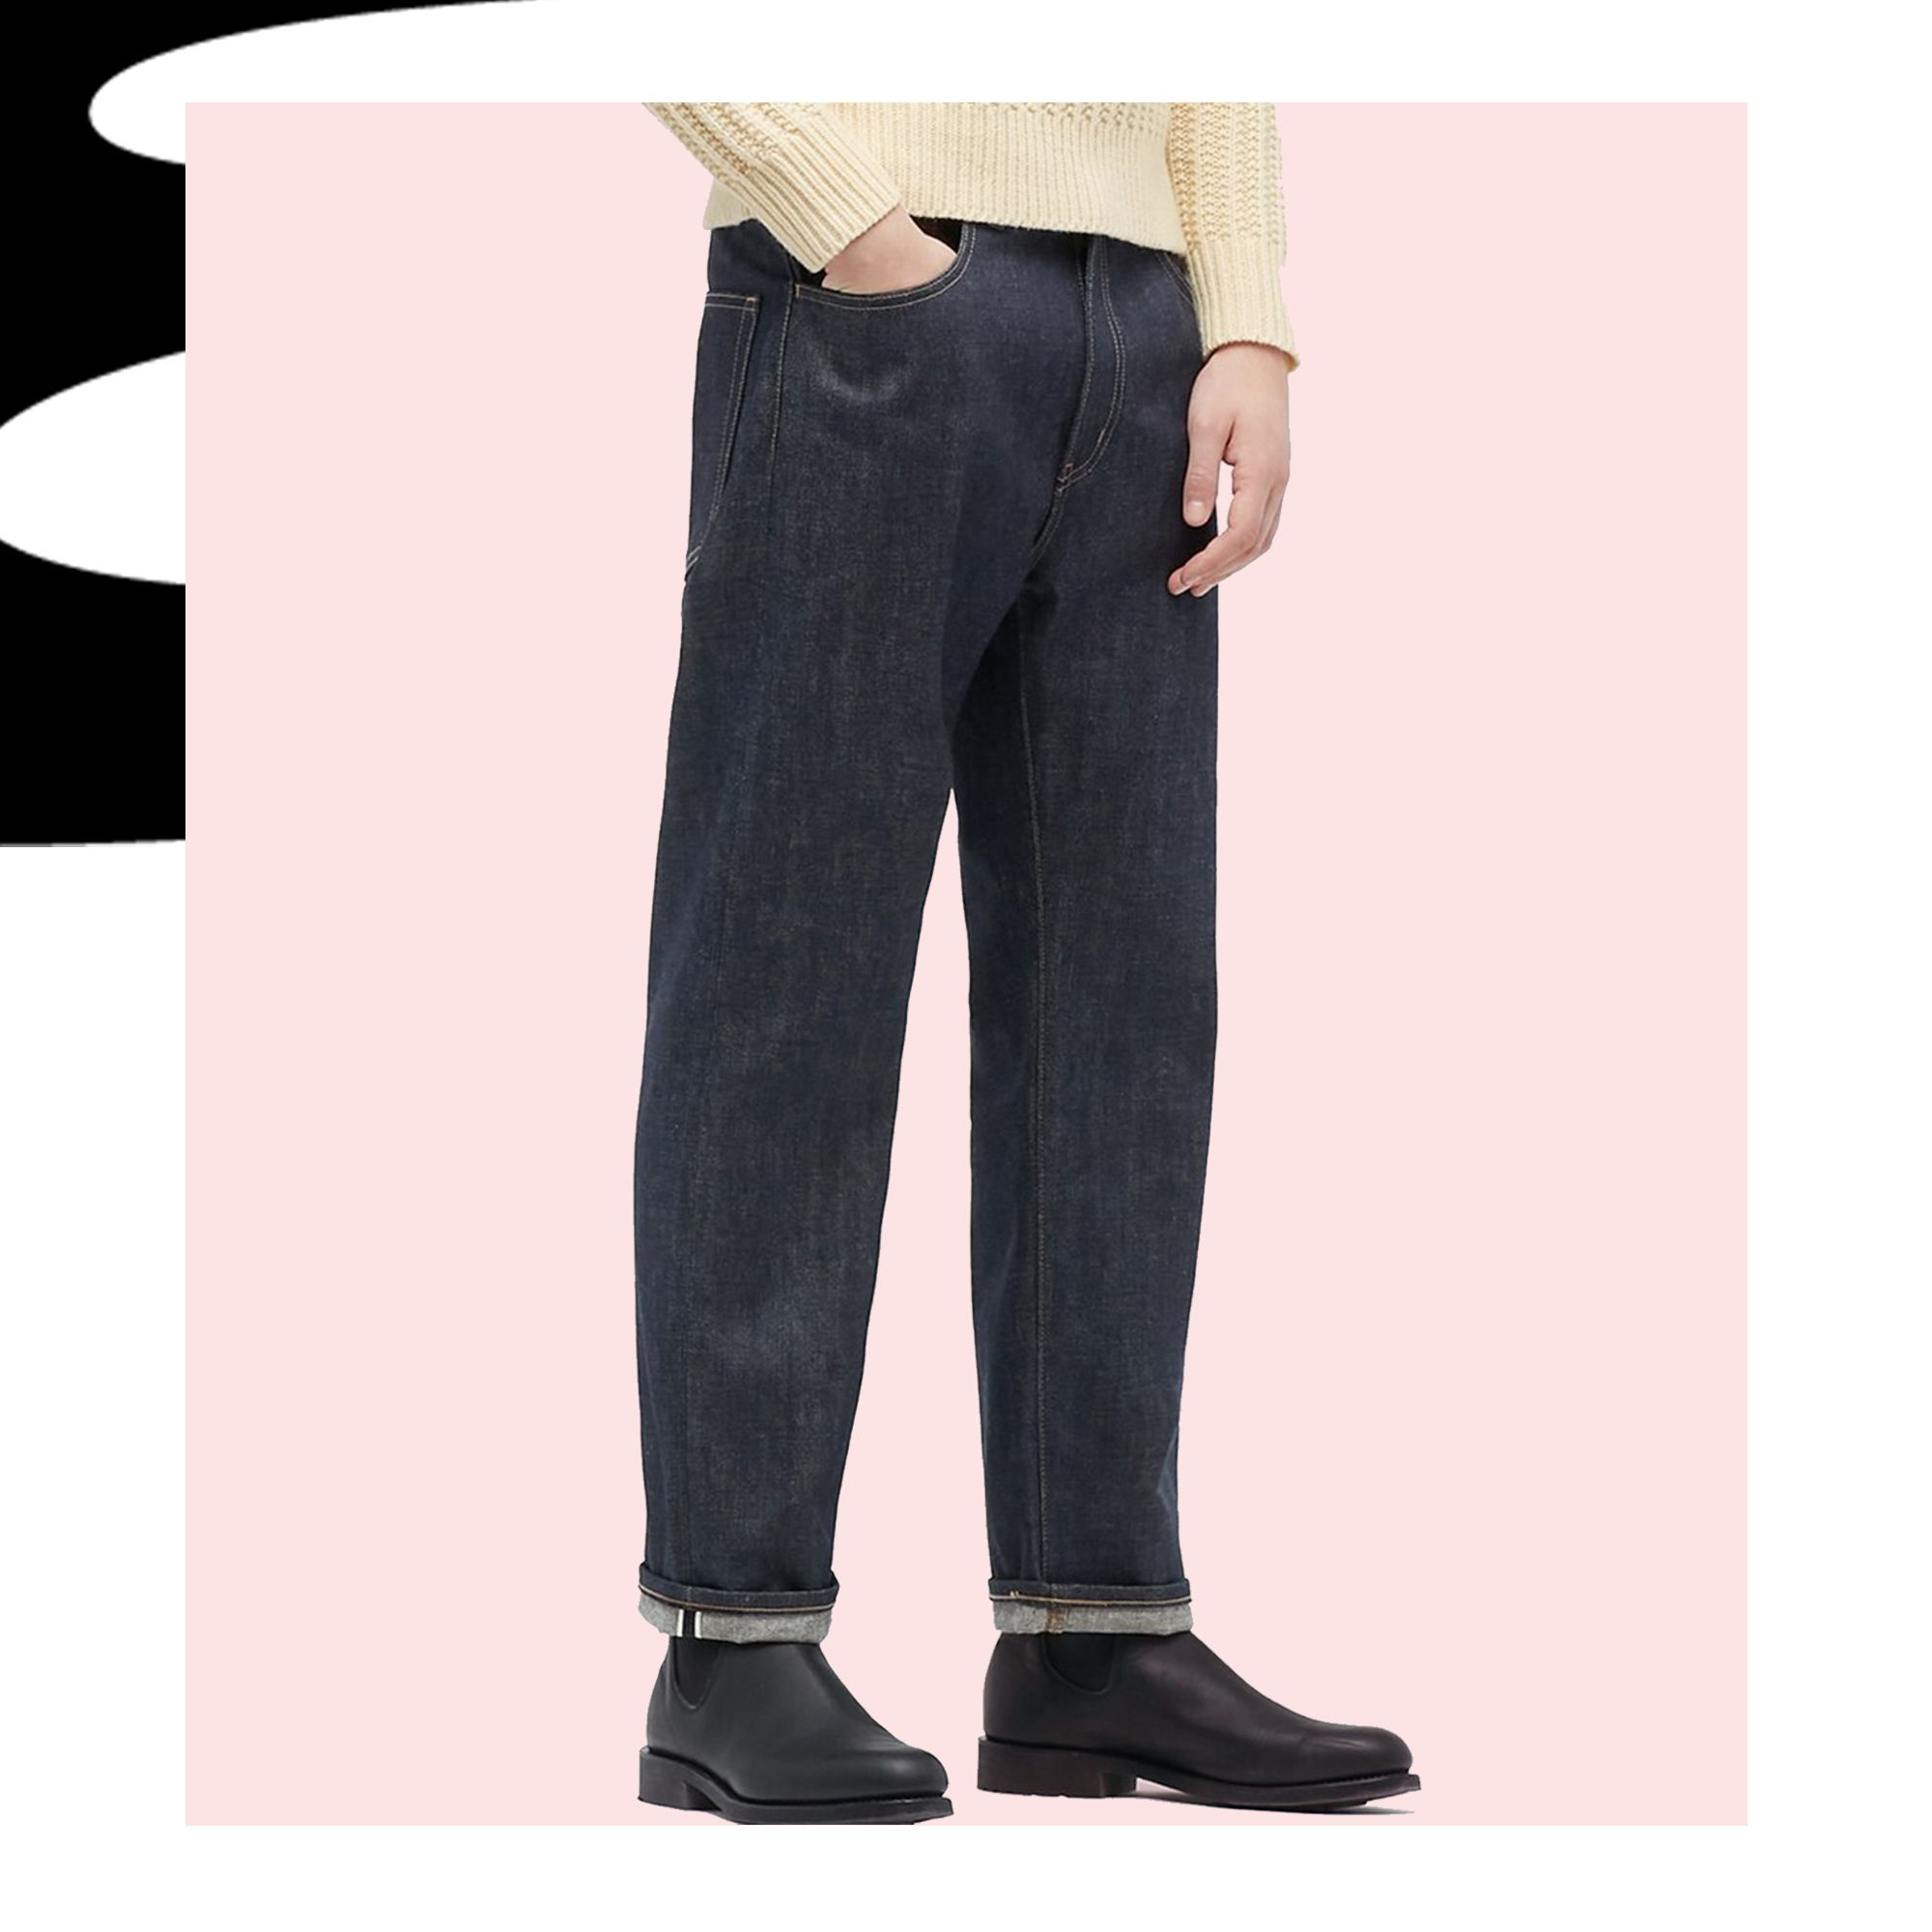 Uniqlo's Selvedge Jeans Will Help You Get Back Into the Swing of Things